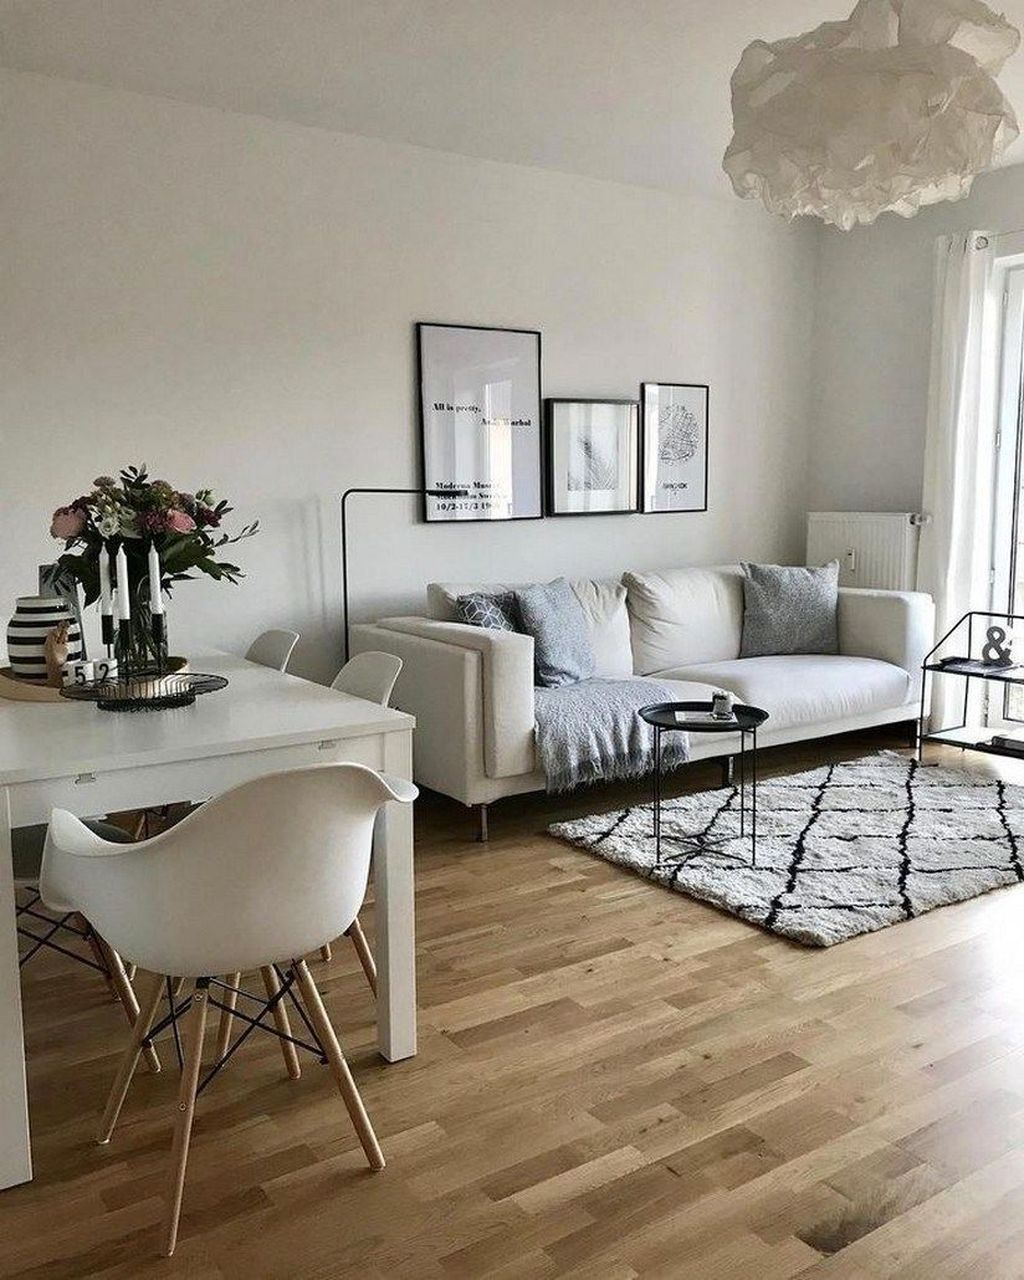 32 Brilliant Small Apartment Decorating Ideas You Need To Try Homyhomee Small Apartment Living Room Small Apartment Living Small Apartment Decorating Living Room